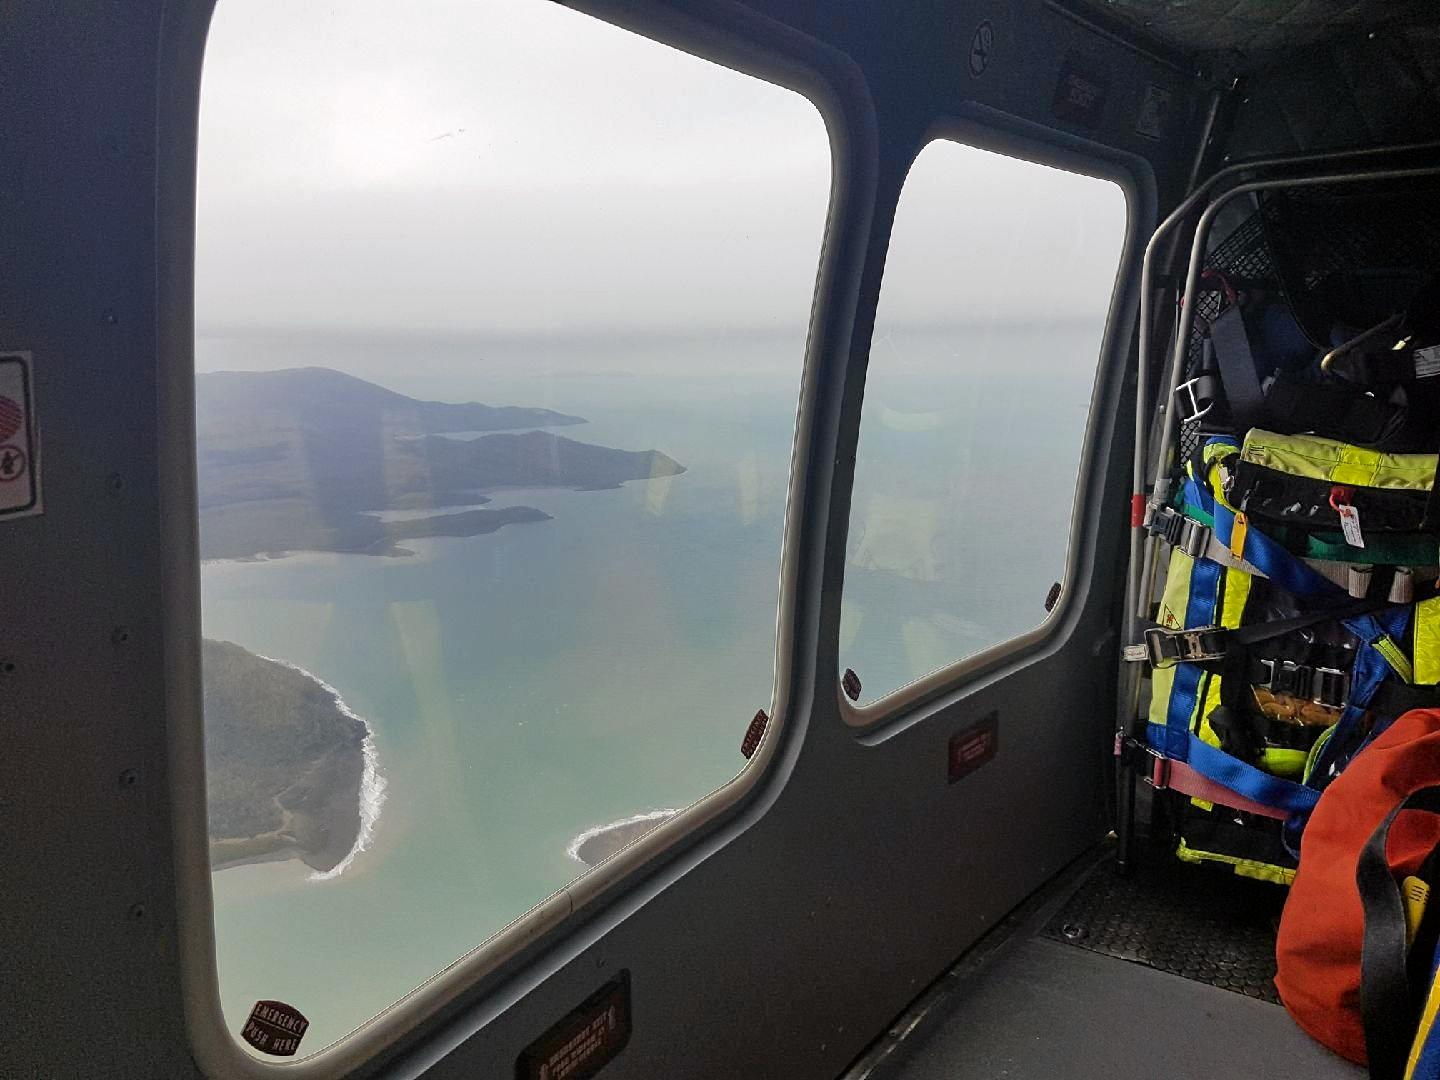 RACQ CQ Rescue en route to the beacon activation.